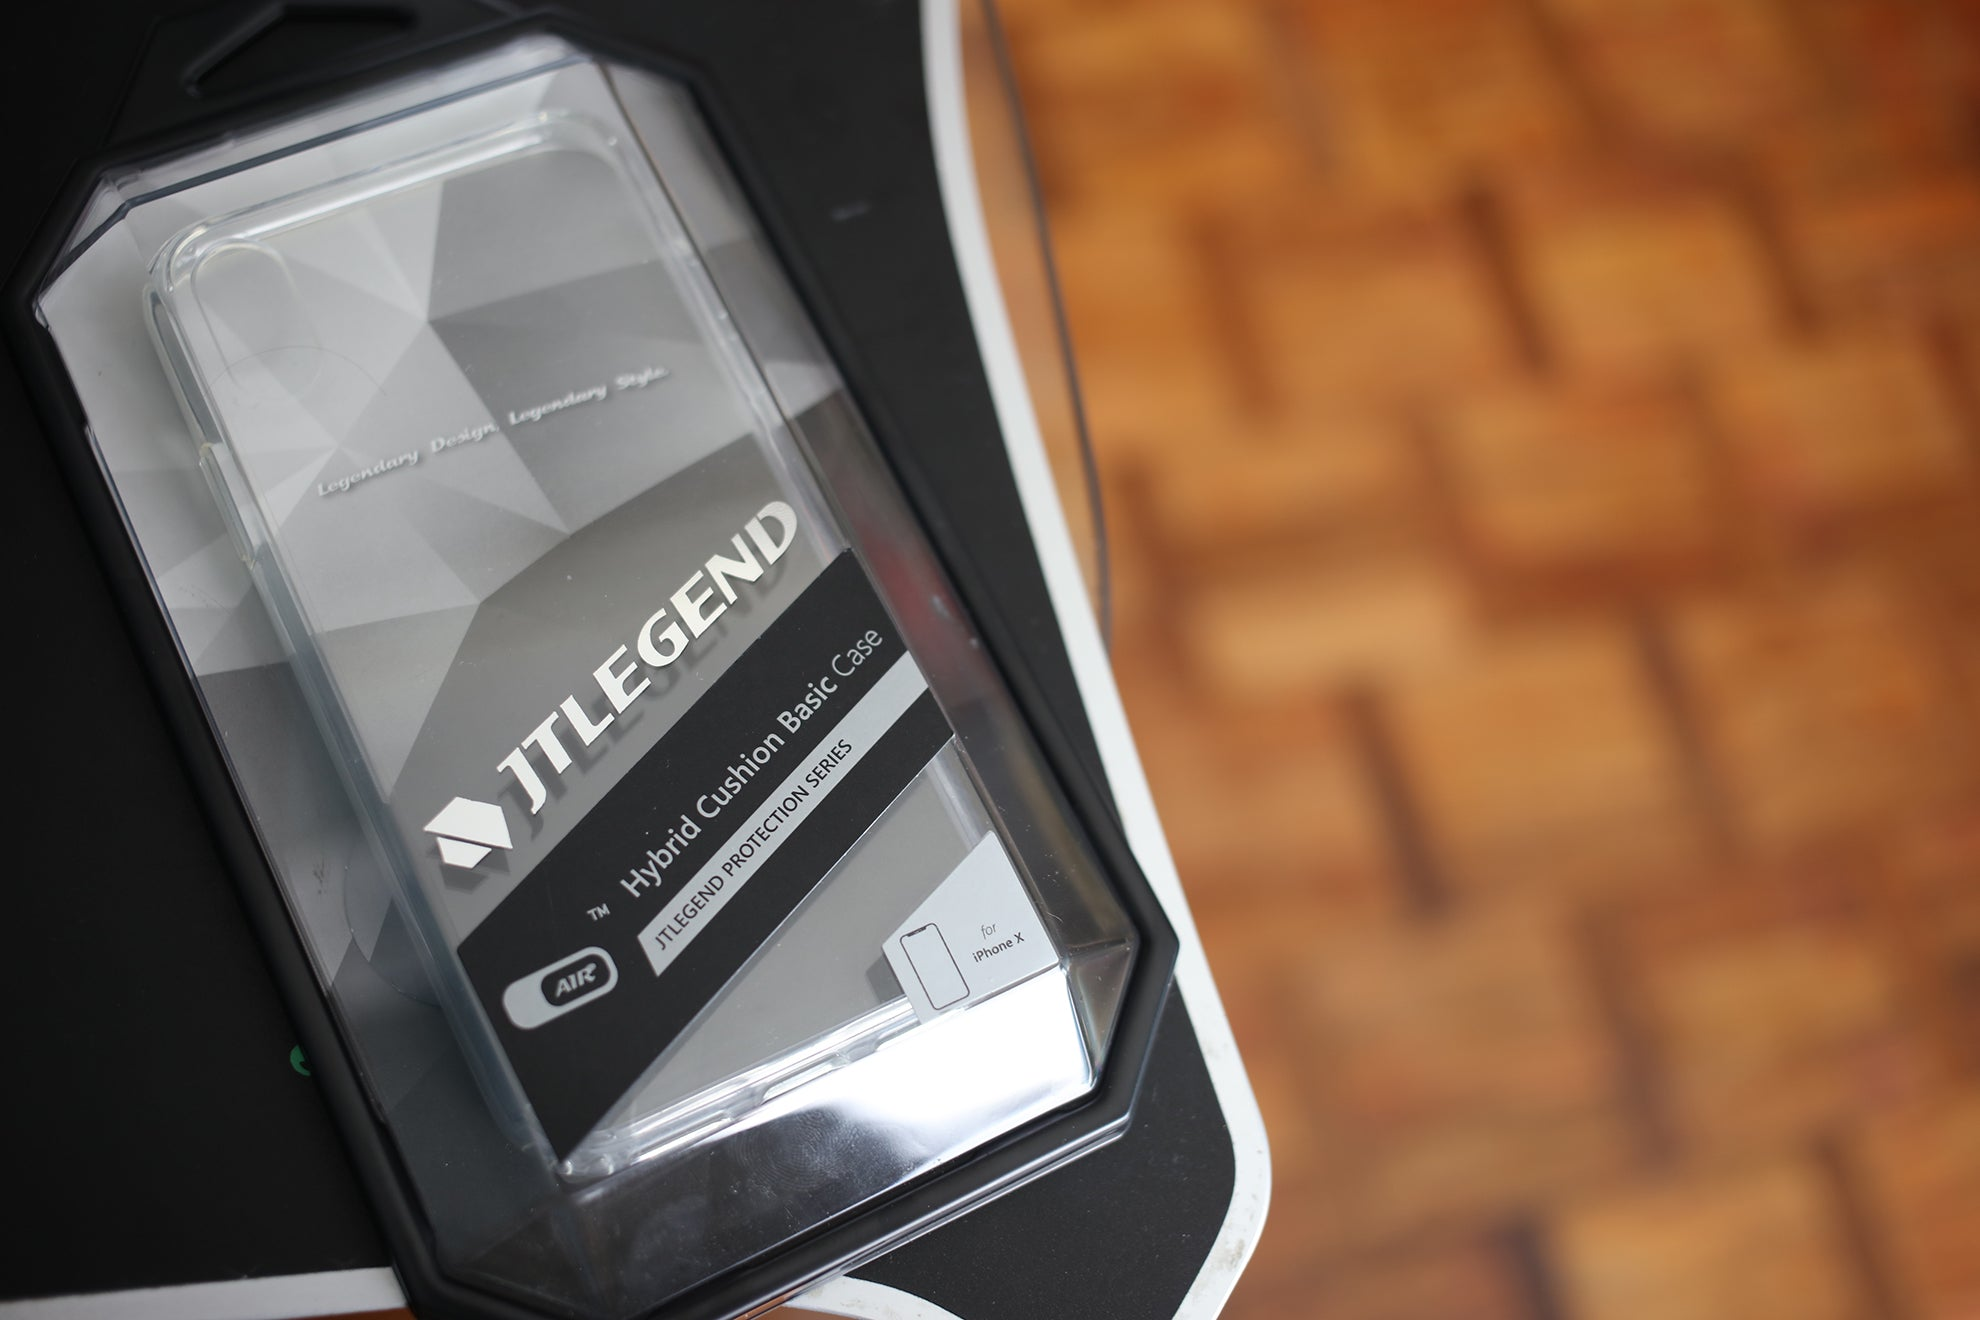 JT Legend Hybrid Cushion Basic iPhone Case Review